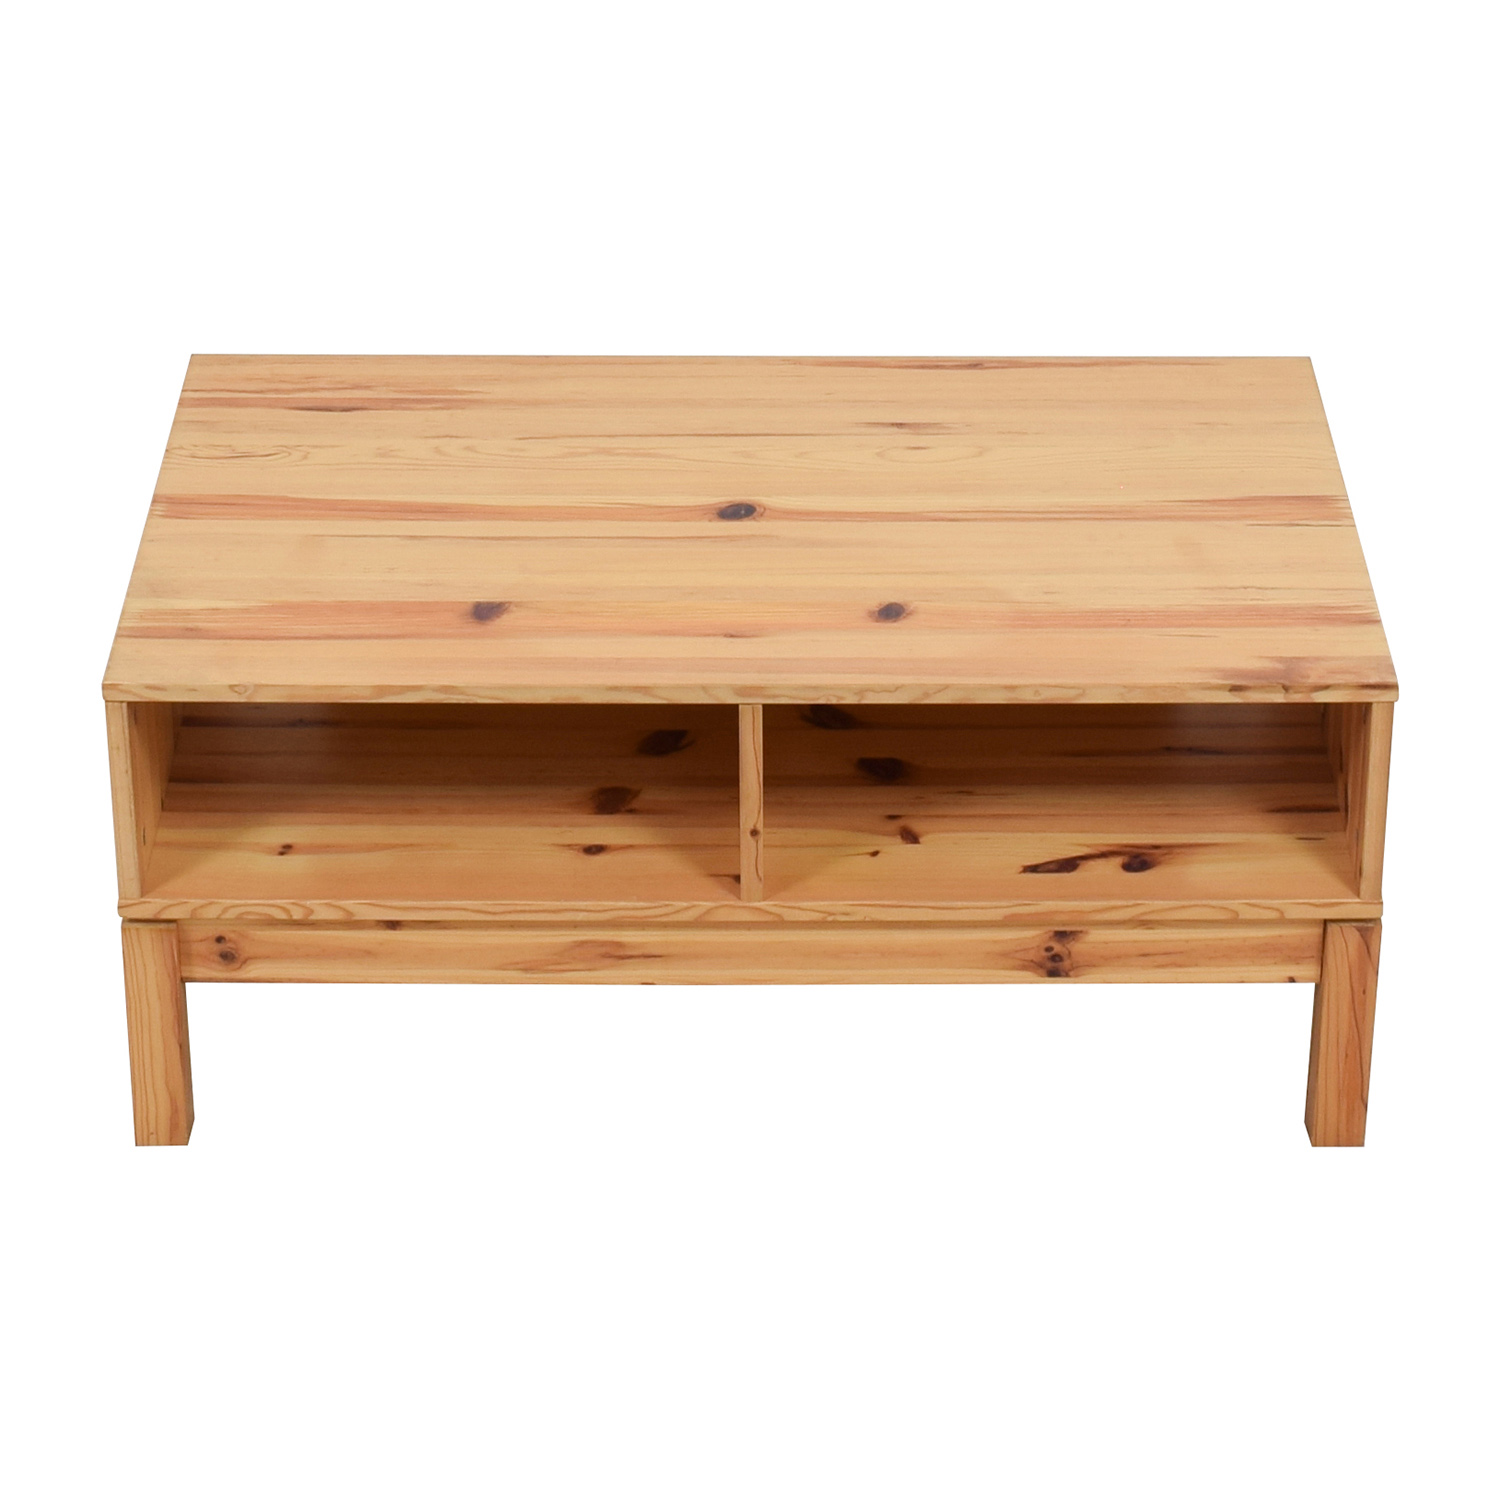 IKEA Husar Pine Wood TV Table sale